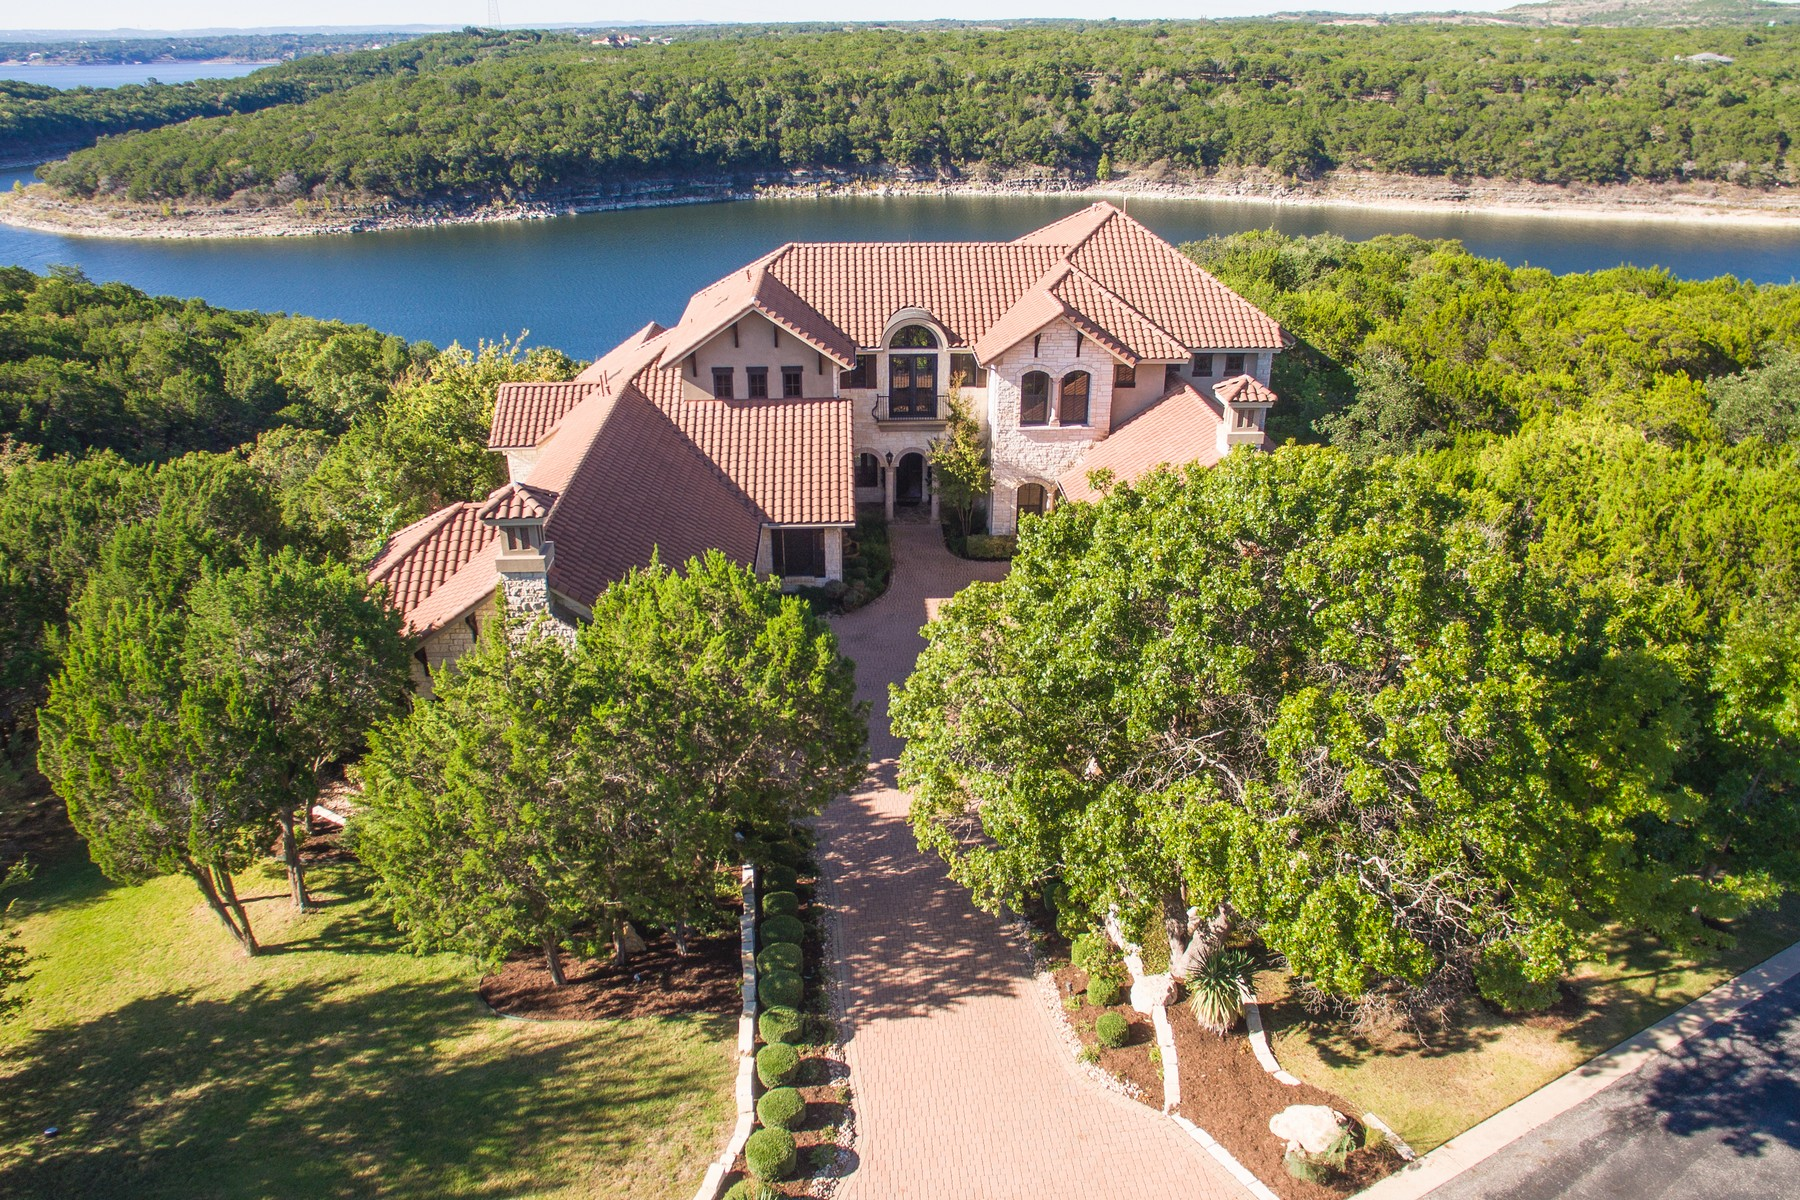 Casa Unifamiliar por un Venta en French Chateau on 3.425 Acres and Lake Travis 17911 Breakwater Dr Jonestown, Texas 78645 Estados Unidos